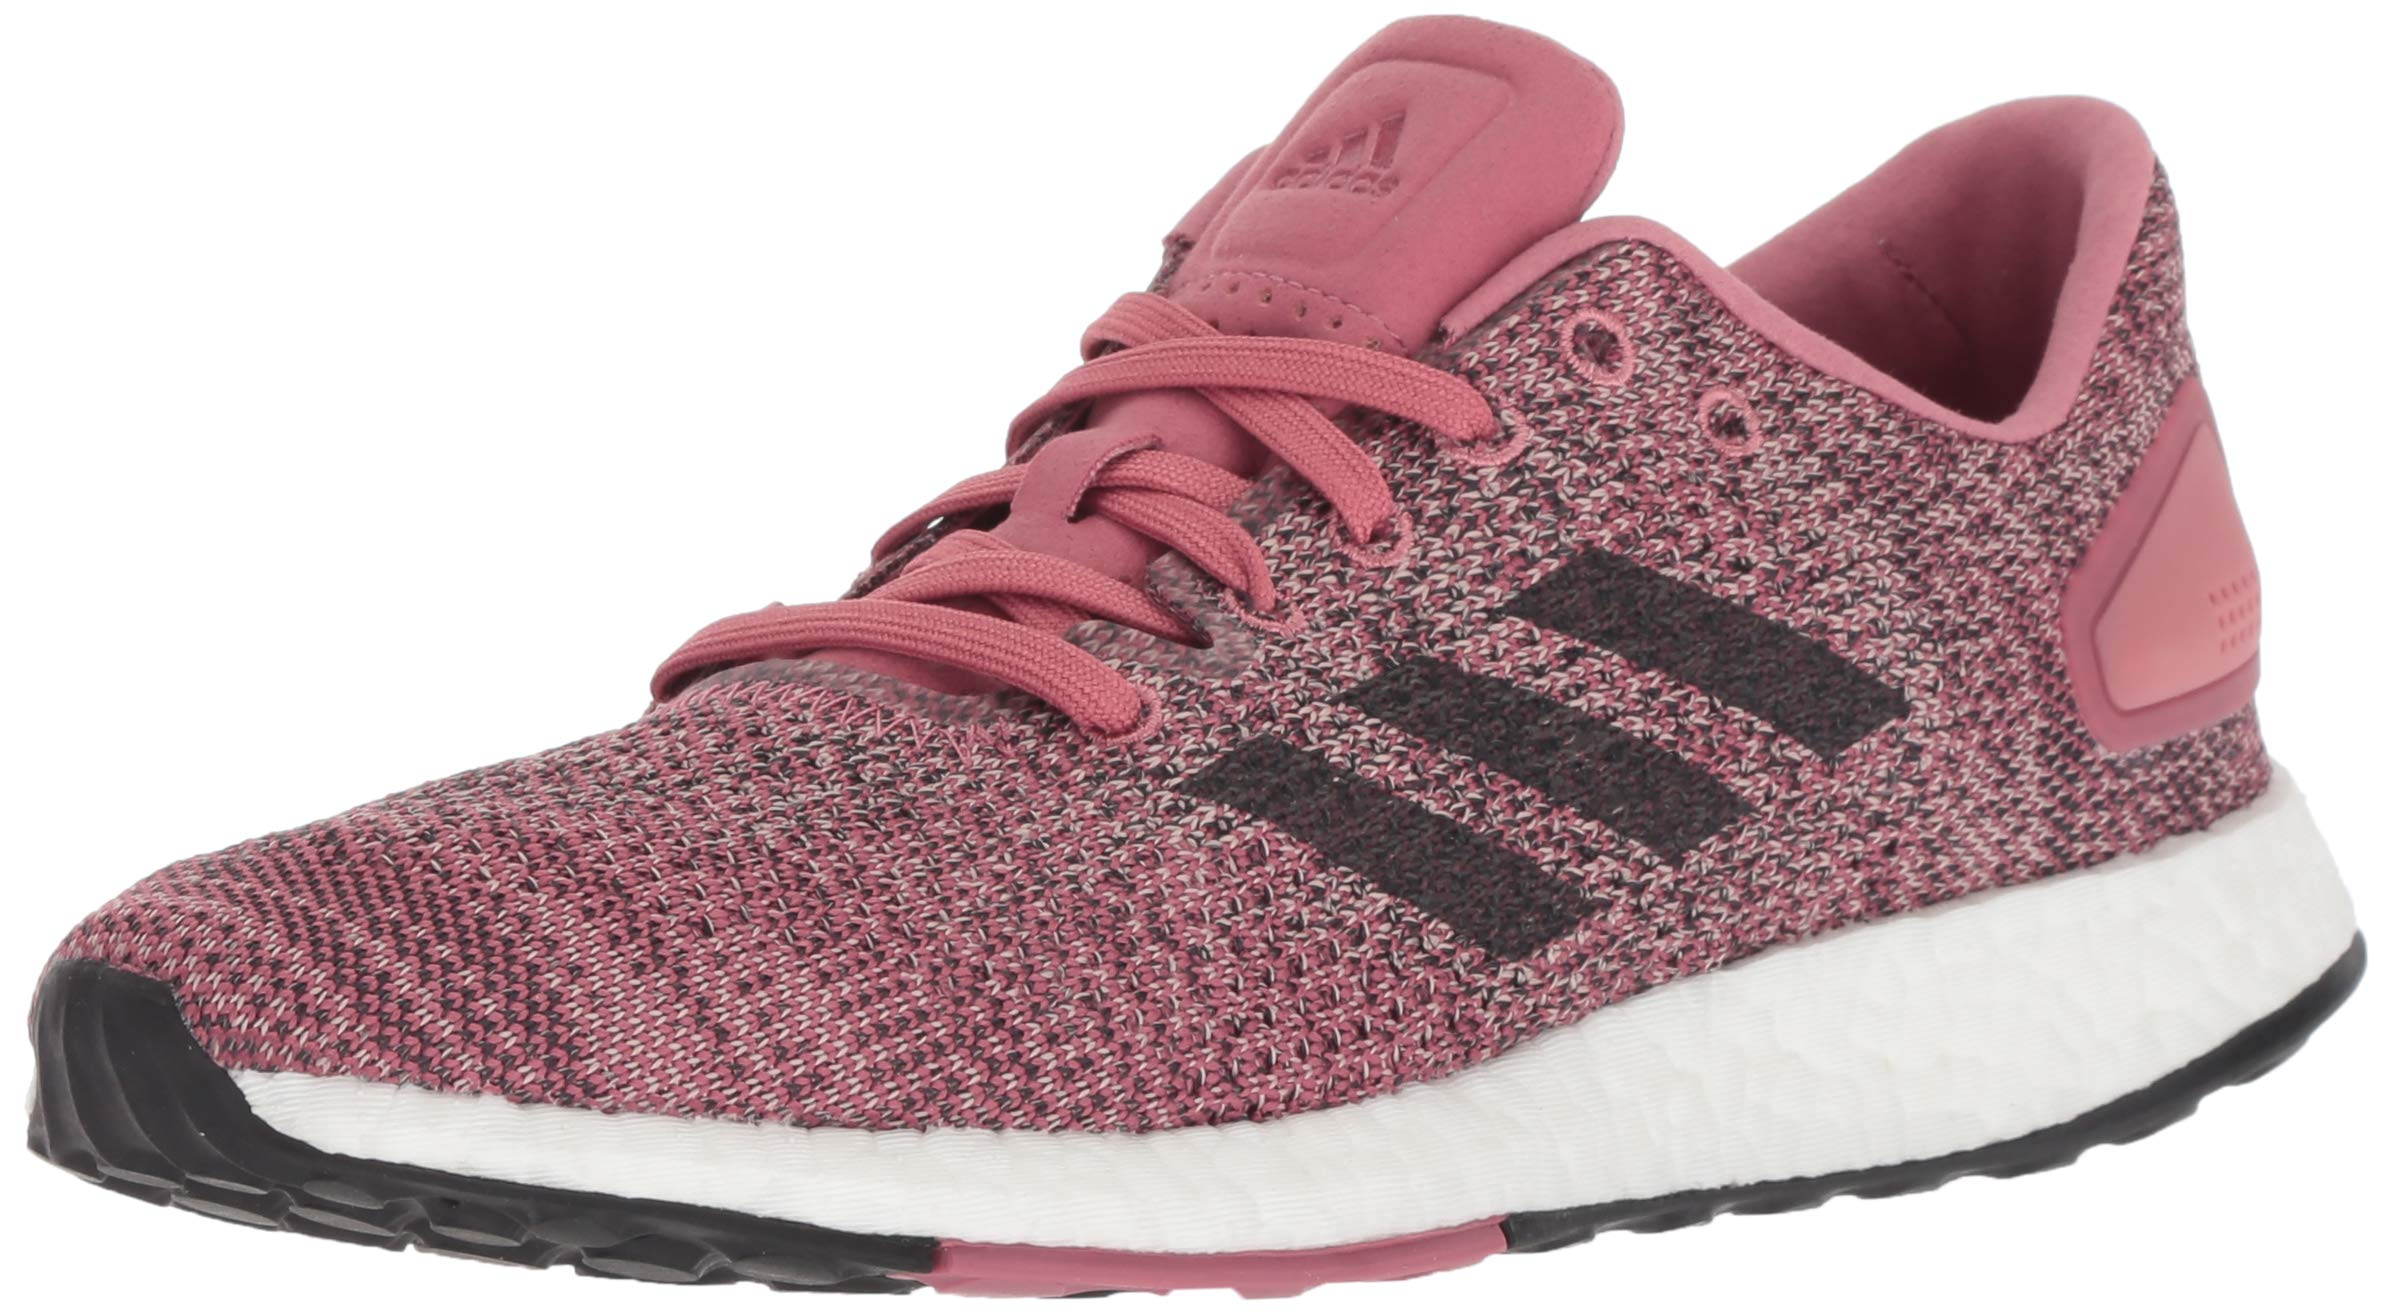 adidas Women's Pureboost DPR Running Shoes, Trace Maroon/Carbon/ash Pearl, 11 M US by adidas